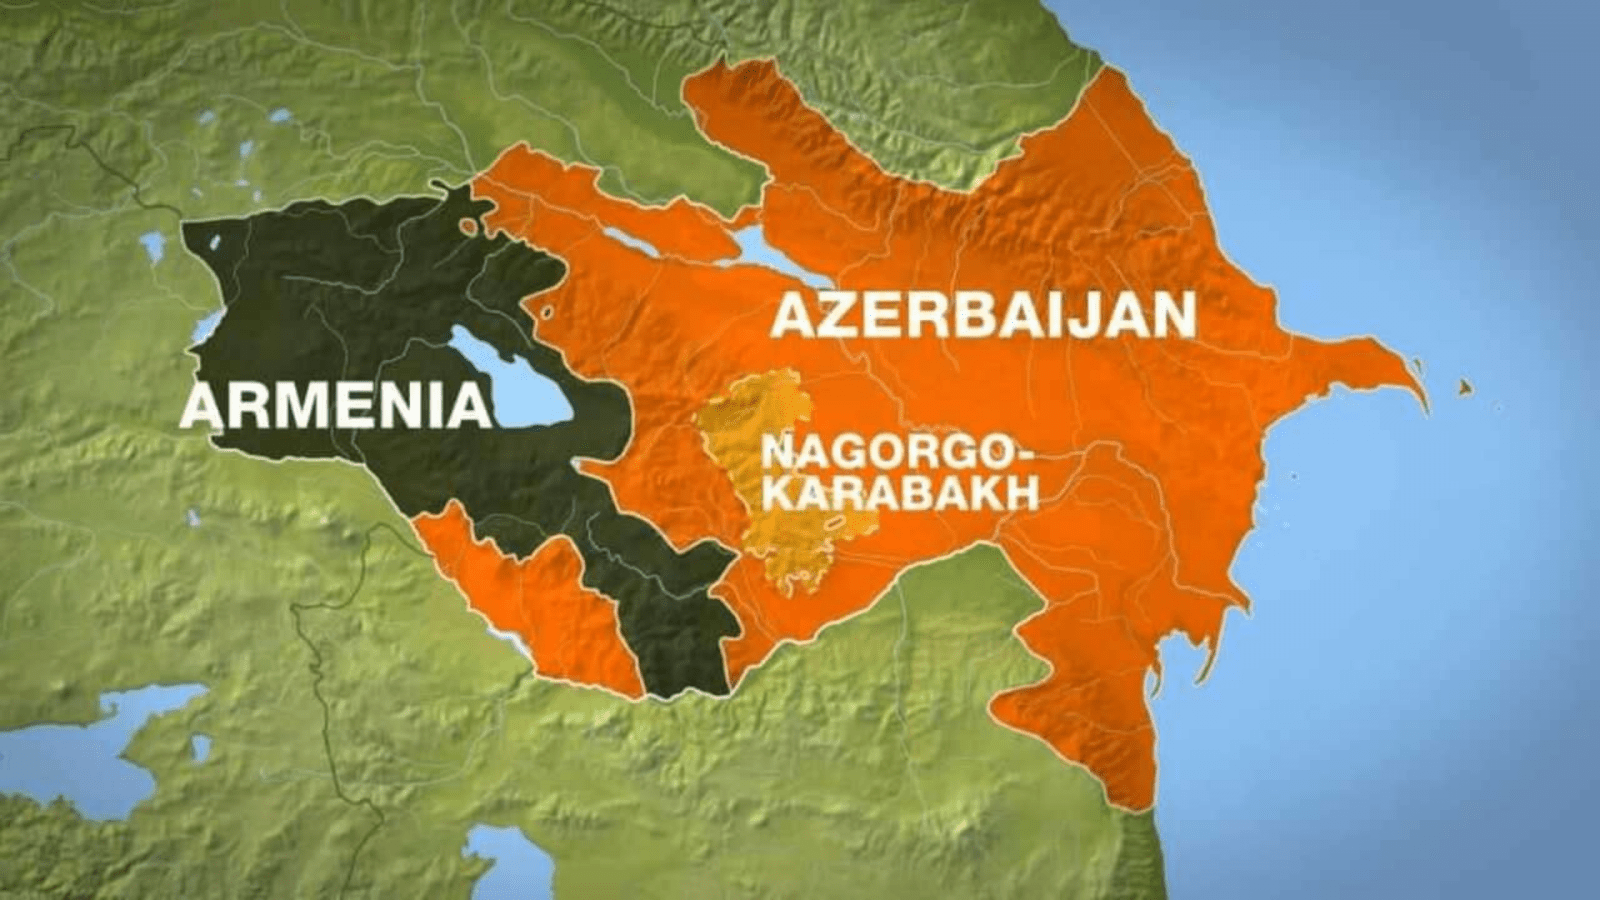 Armenia and Azerbaijan disputed region